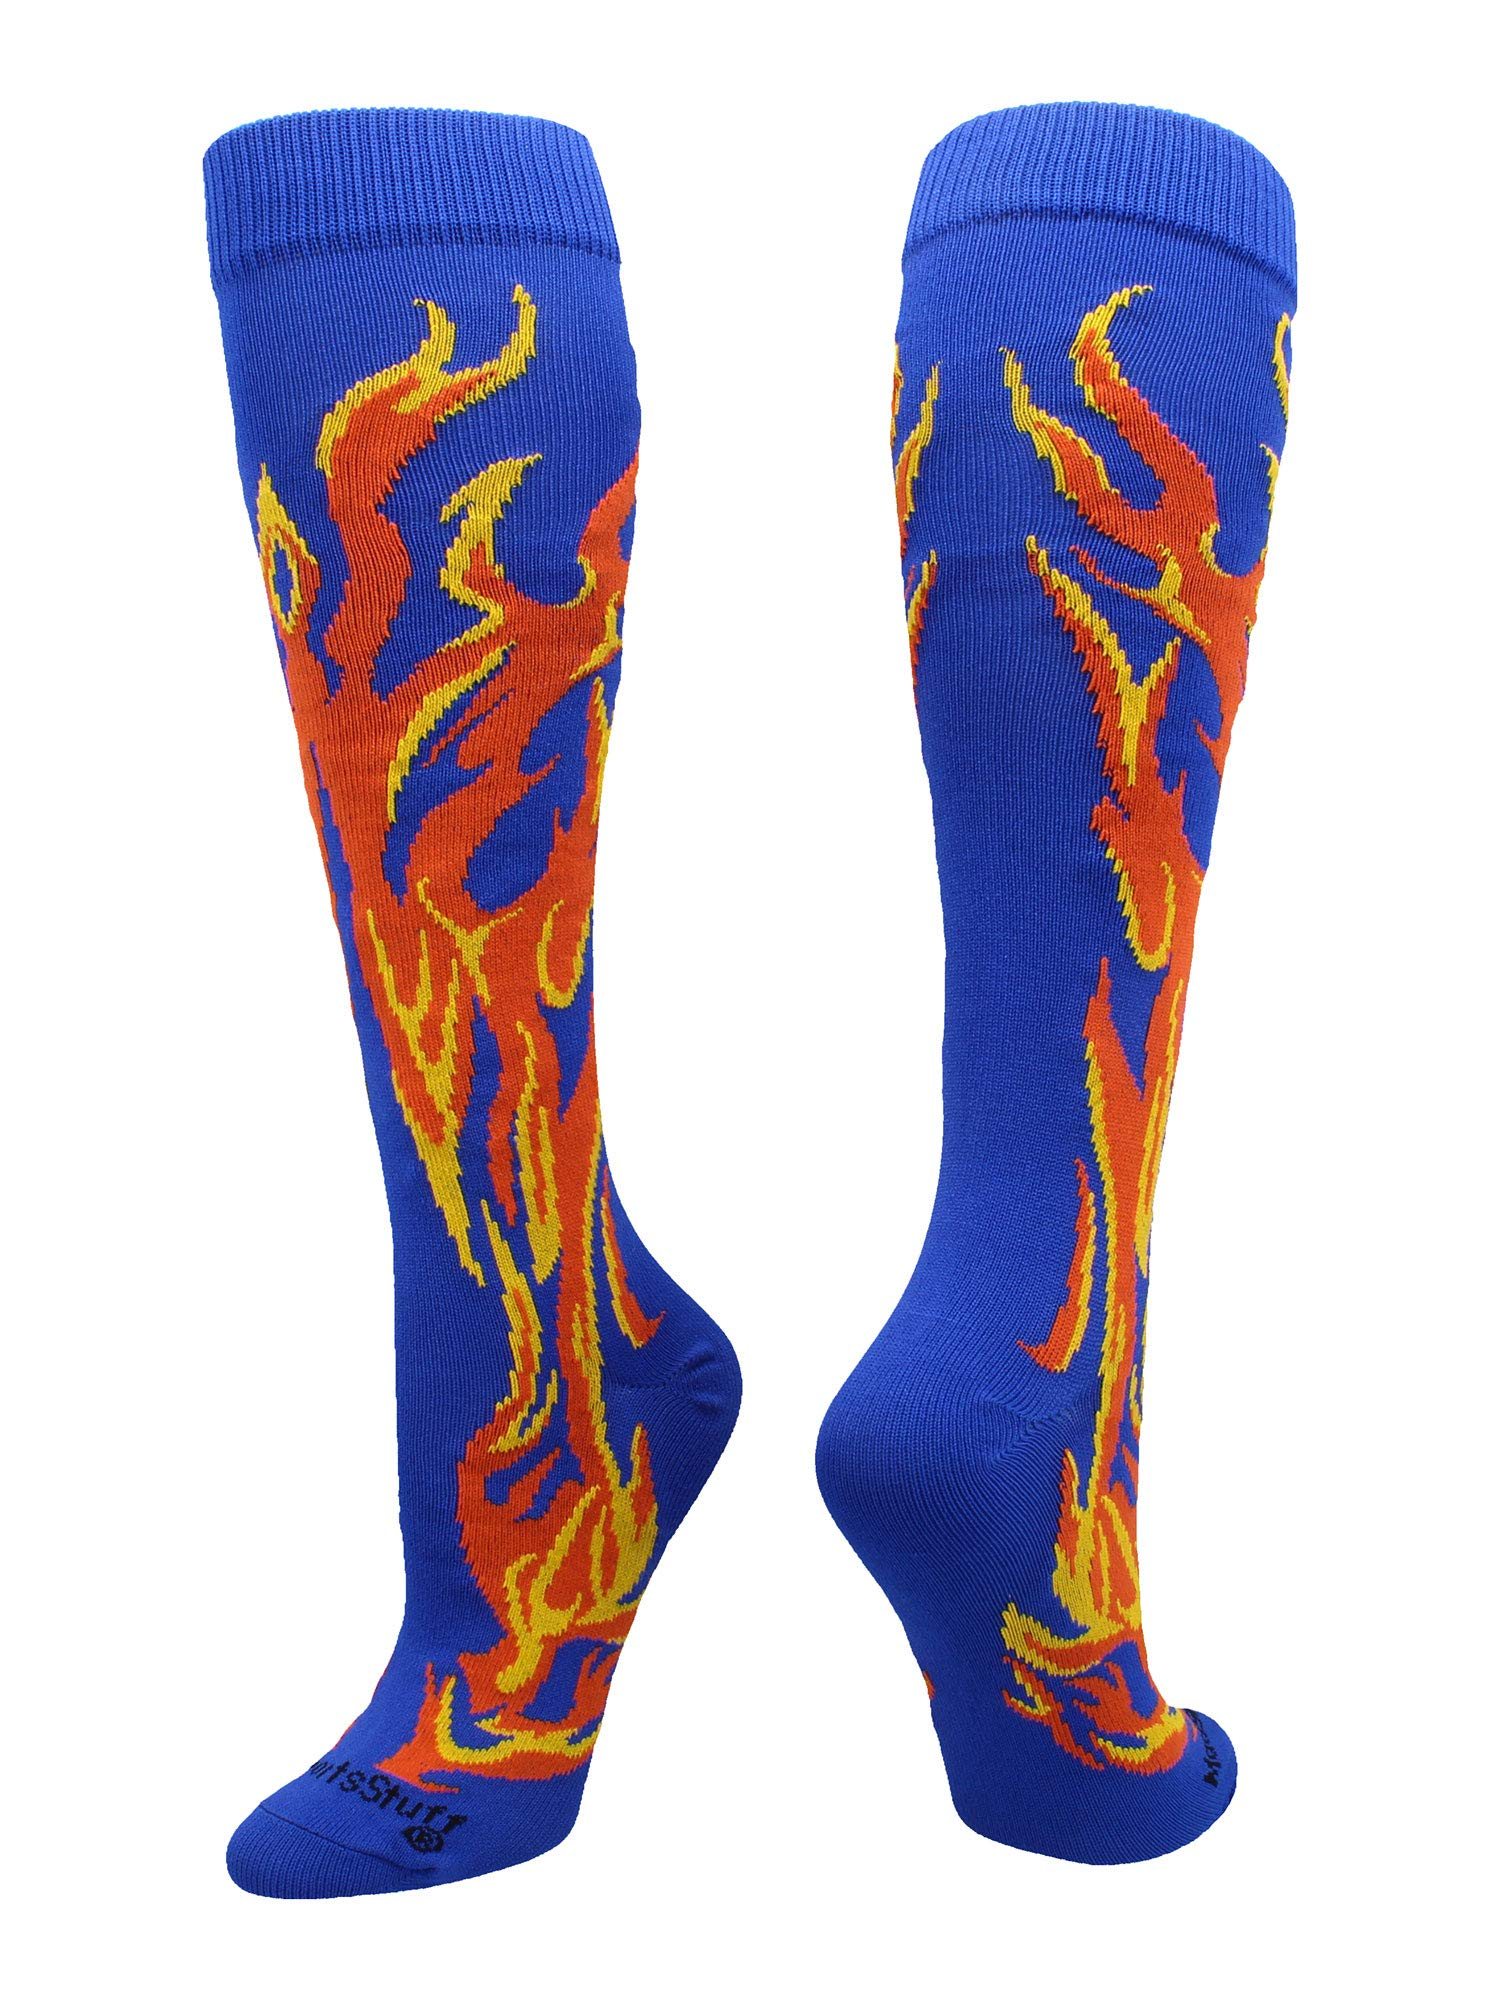 MadSportsStuff Flame Socks Athletic Over the Calf Socks (Royal/Orange/Gold, Small)